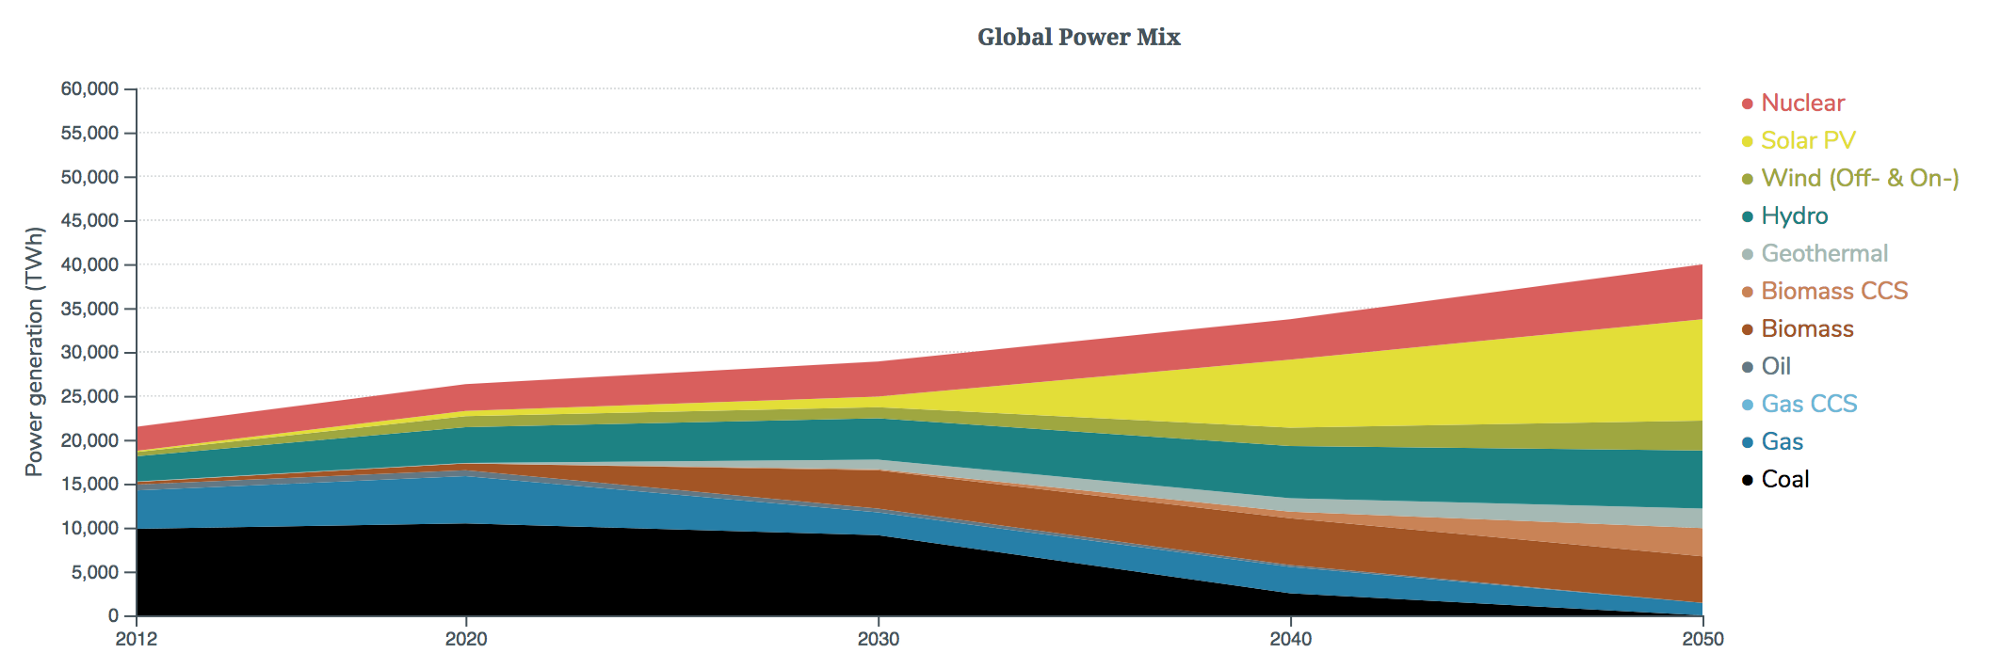 fossil fuel use over time